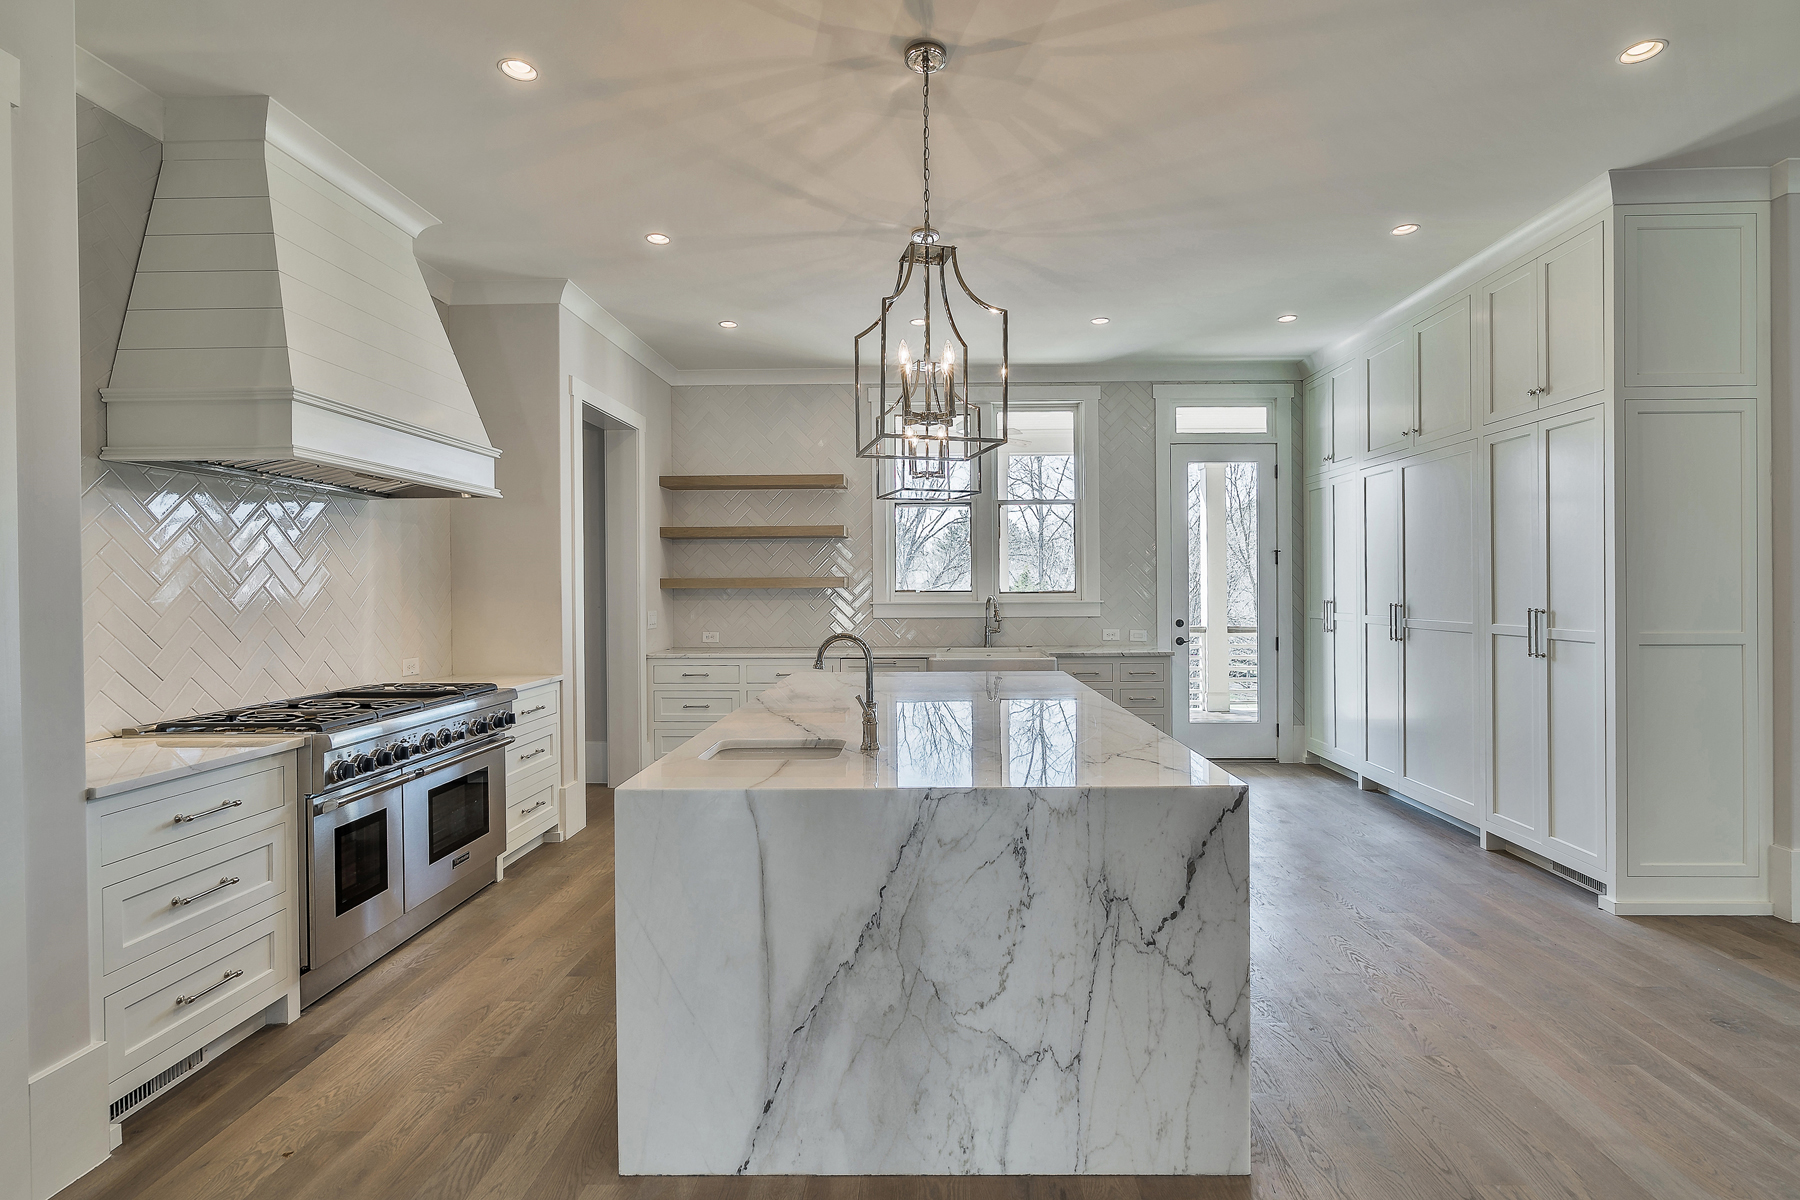 Single Family Homes for Sale at Stunning Modern Brick Estate To Be Built in Milton 565 Lost River Bend Milton, Georgia 30004 United States